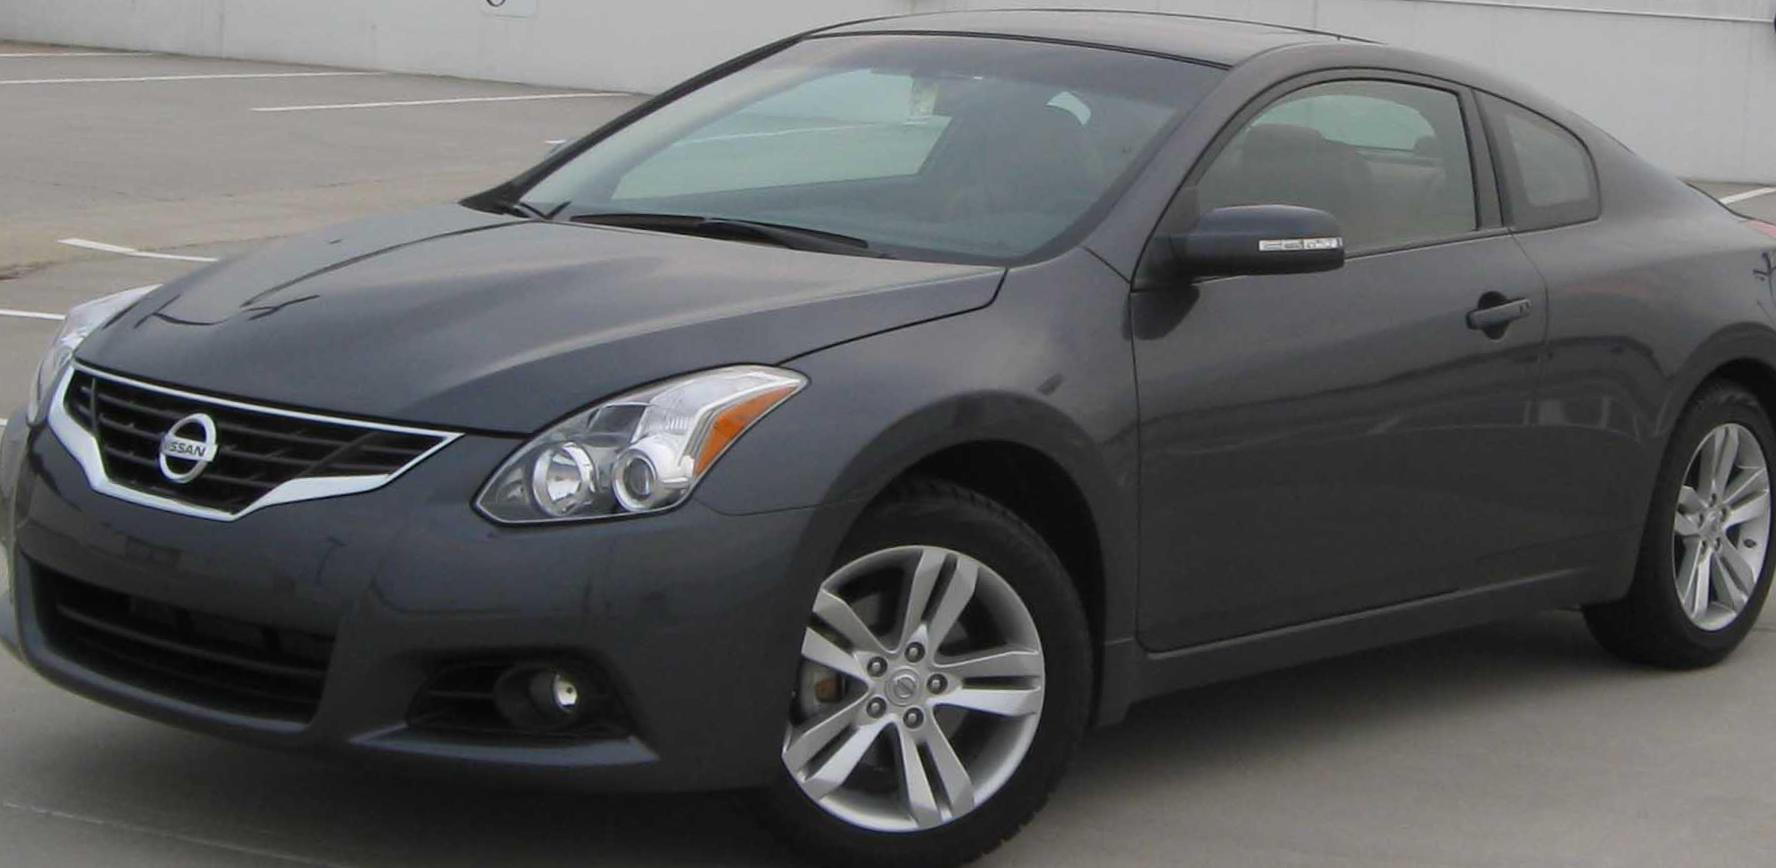 Altima Nissan price 2010